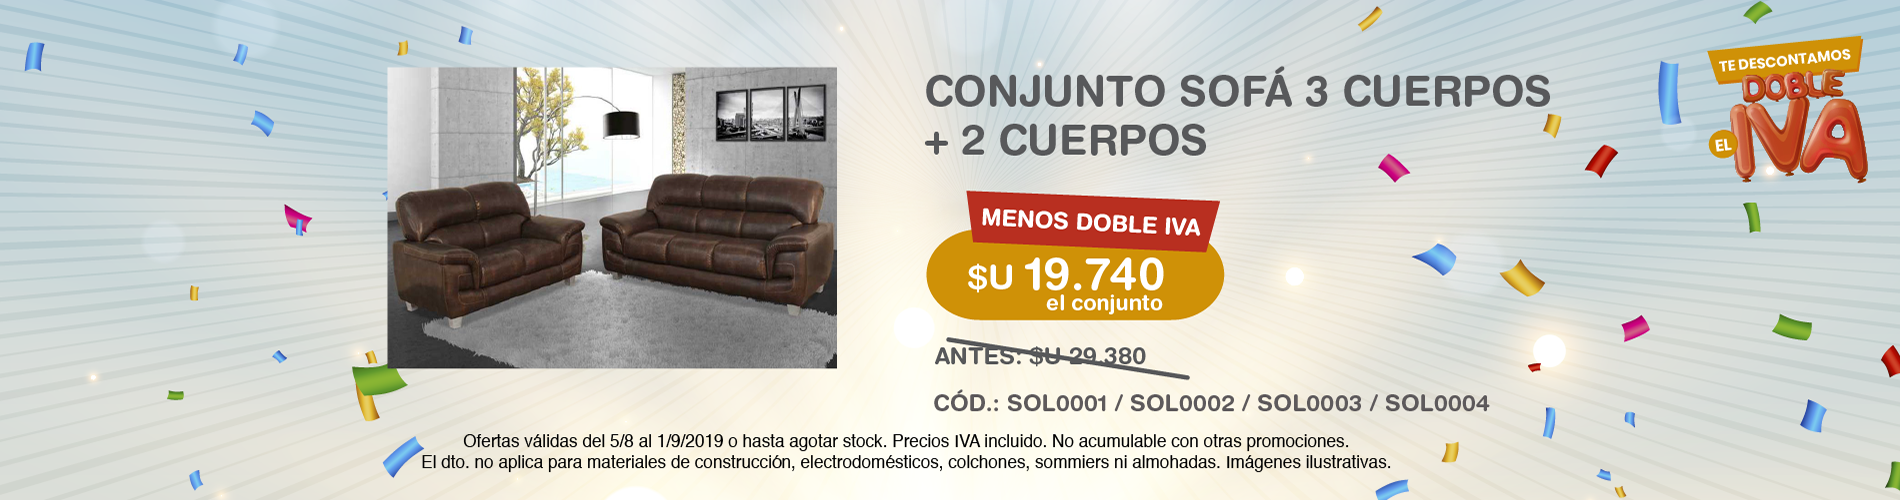 iva doble iva sofa lucy